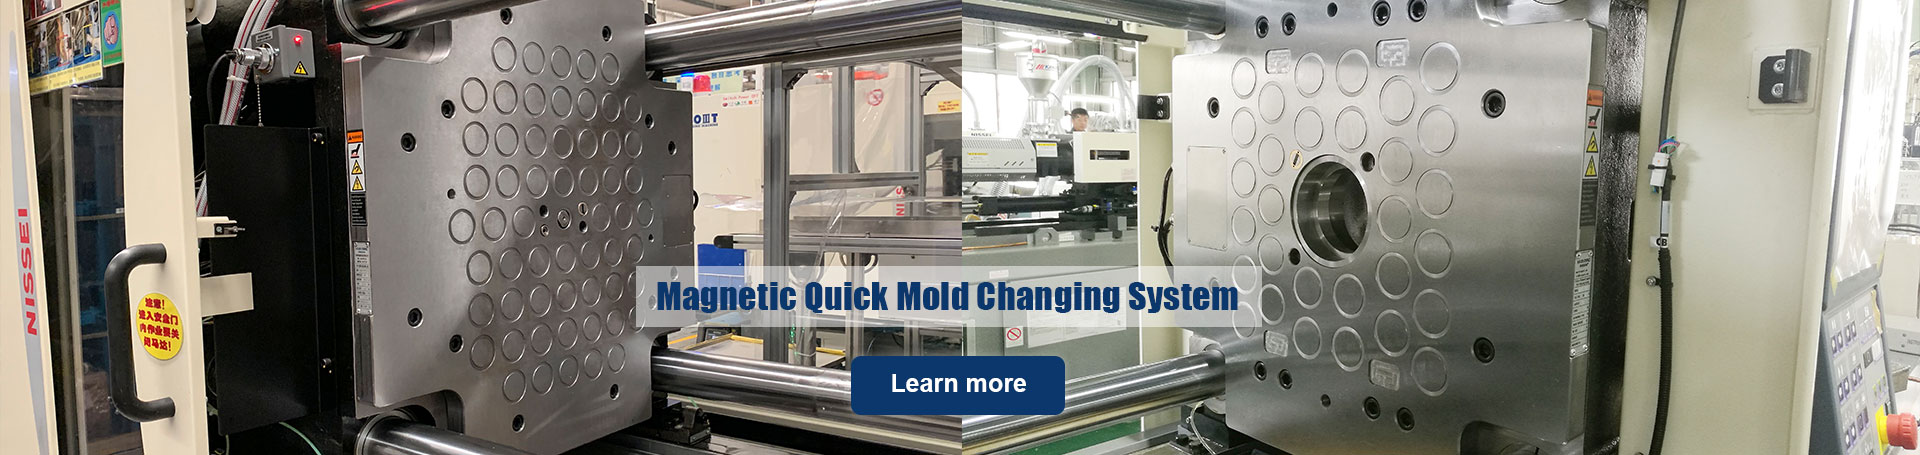 Magnetic Clamping System for Quick Mold Change - HVR MAG